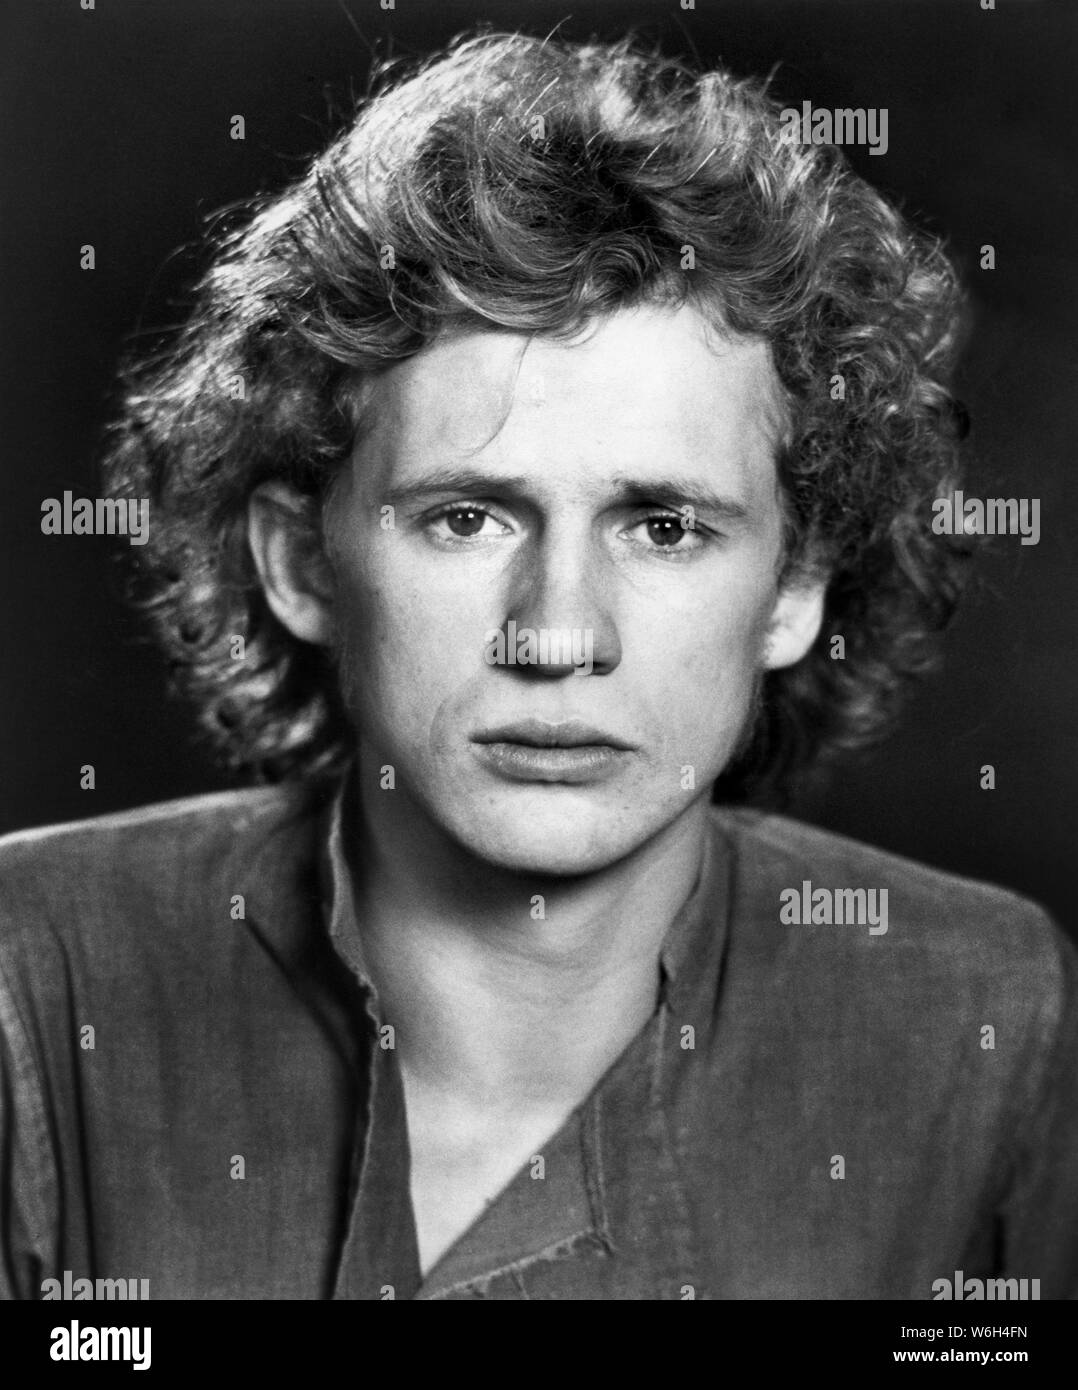 Peter Firth High Resolution Stock Photography and Images - Alamy